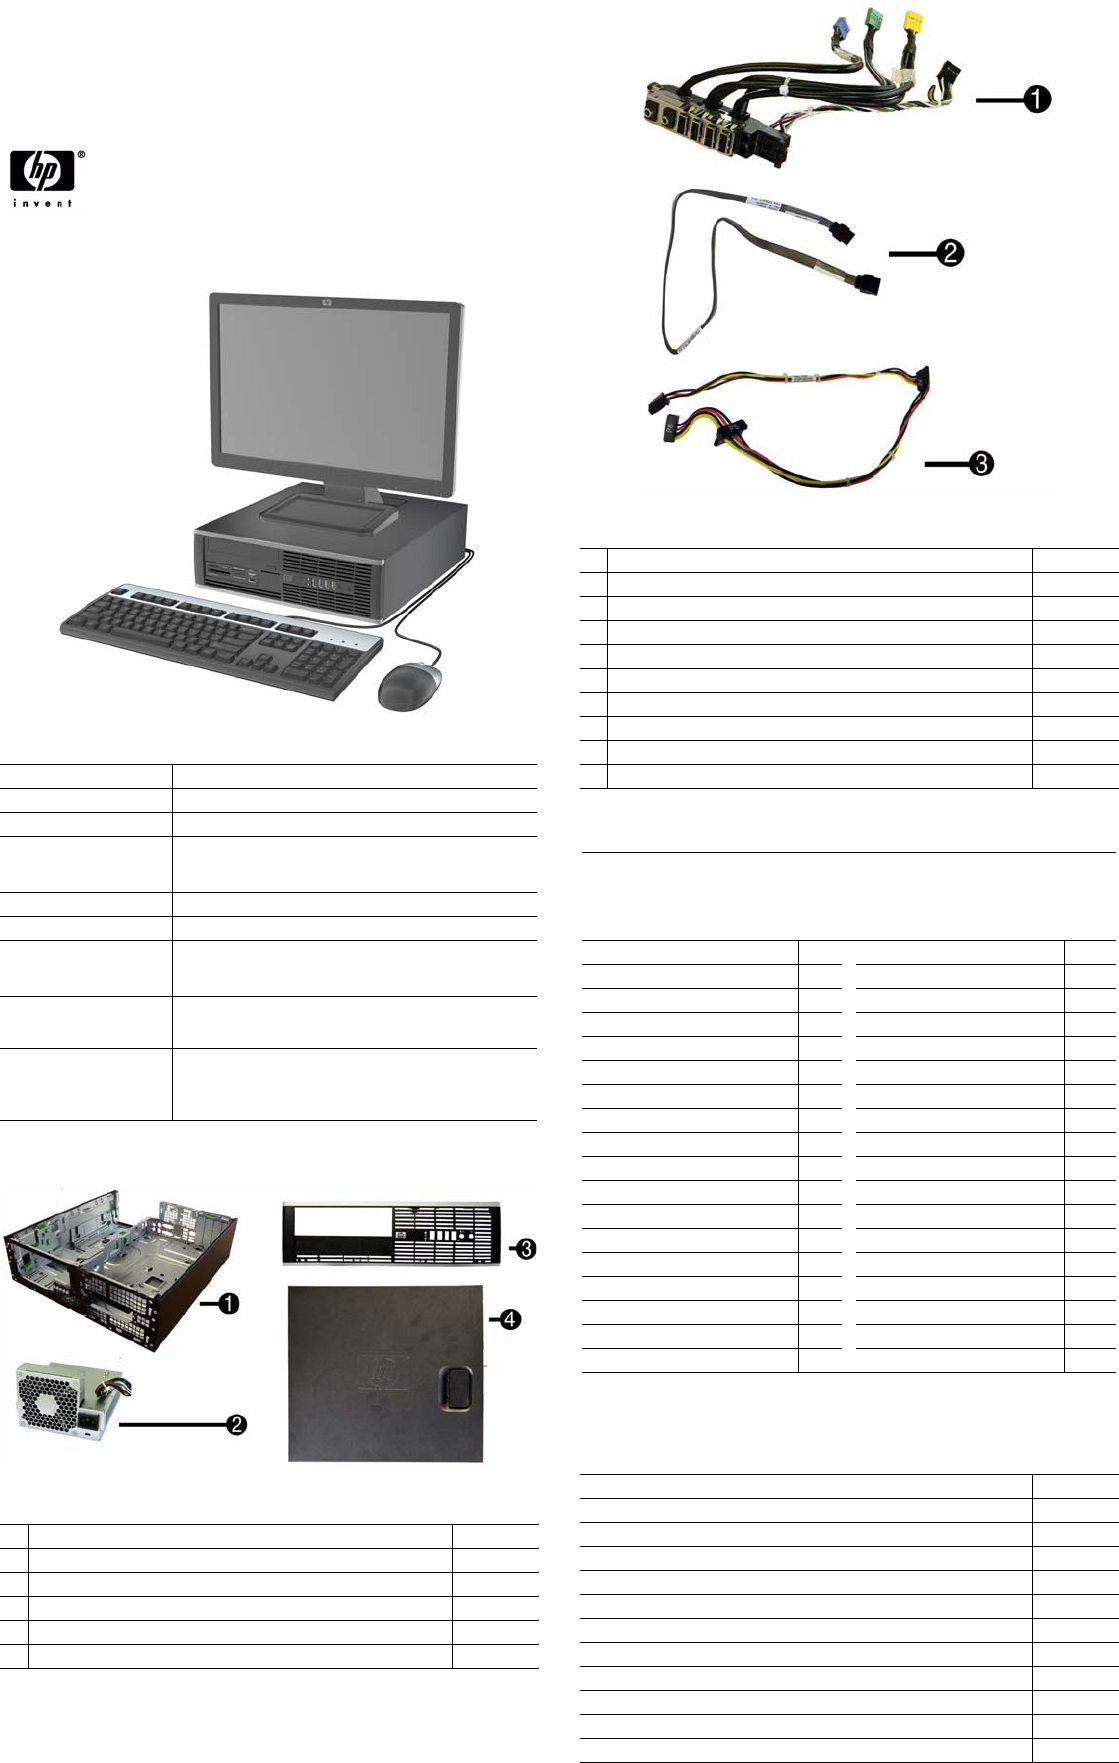 HP Compaq 8100 Elite, SFF Chassis 605652-001 Illustrated